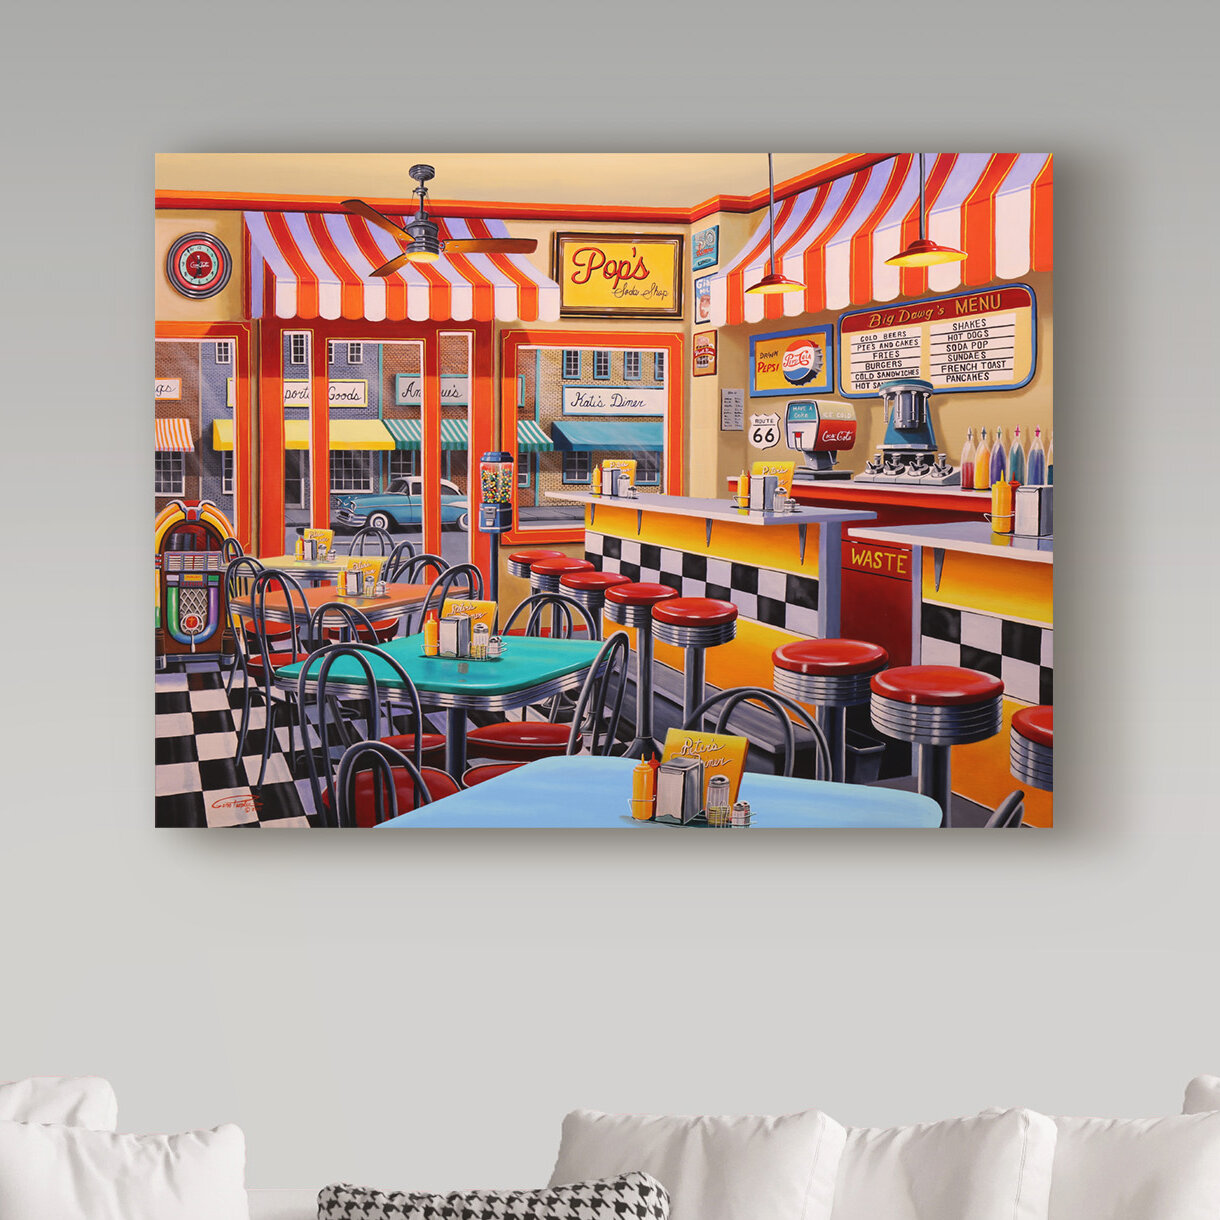 'Peters Malt Shop' Oil Painting Print on Wrapped Canvas on french country kitchen theme, french country kitchens beautiful, french country custom kitchen, french breakfast room ideas, french country kitchen on a budget, french country kitchen decor, french country small kitchen, french country kitchen backsplash, french country kitchen curtain, french country kitchen cabinets, french country kitchen lighting, french country kitchen accessories, french country pantry, french country dream kitchen, french country kitchen handles, french country modern kitchen, french country kitchen table, french country granite, french kitchen window, french kitchen looks,